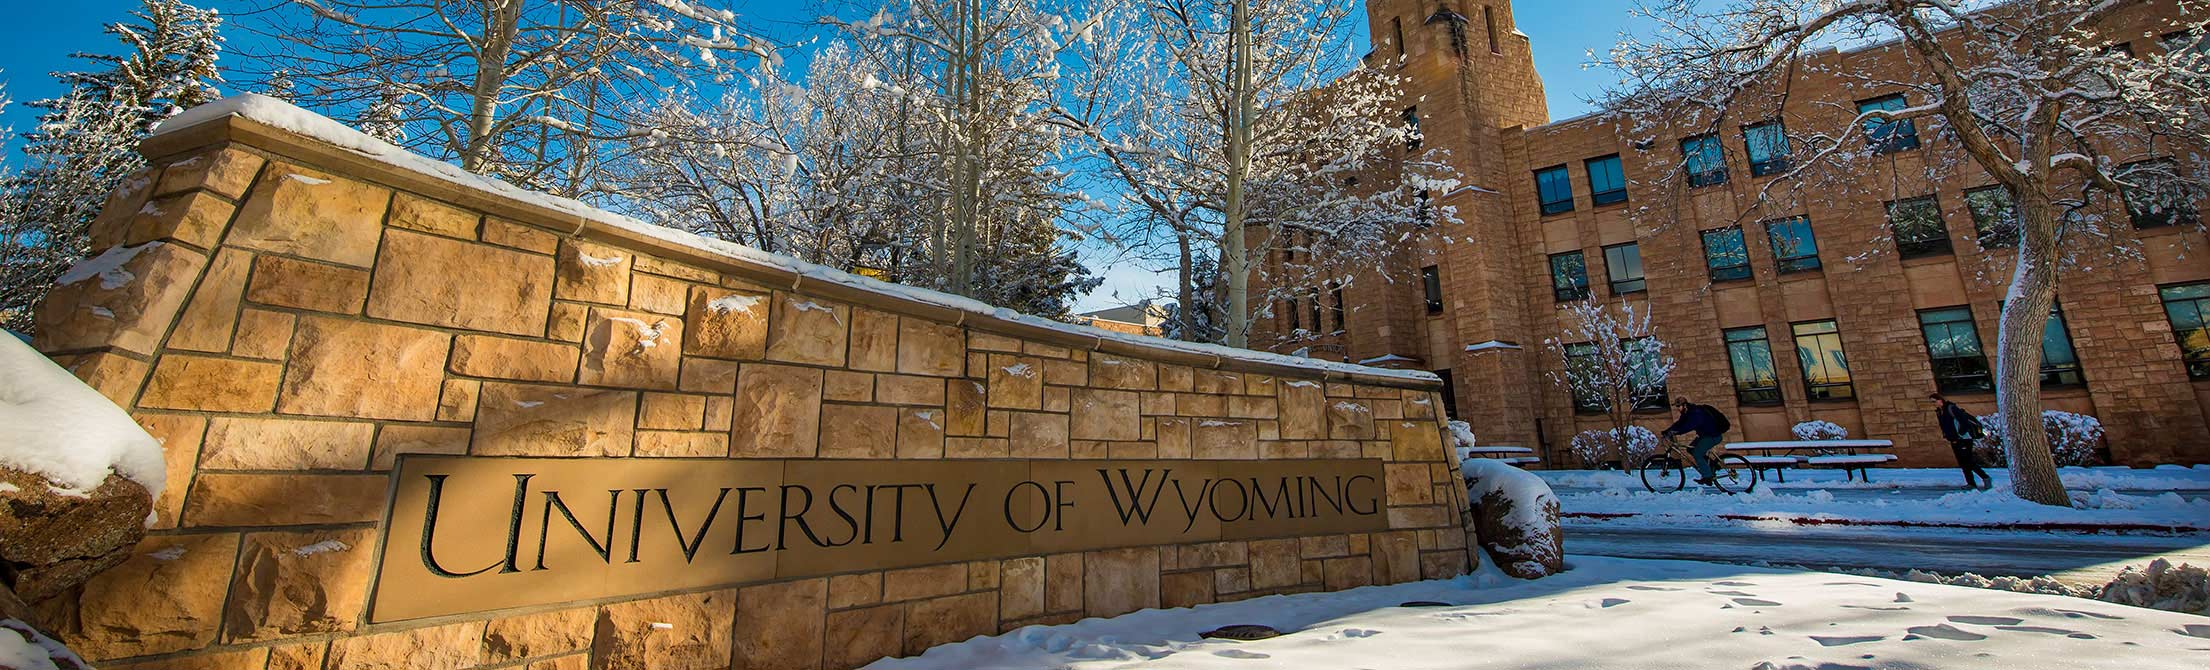 University of Wyoming sign outside the union during winter